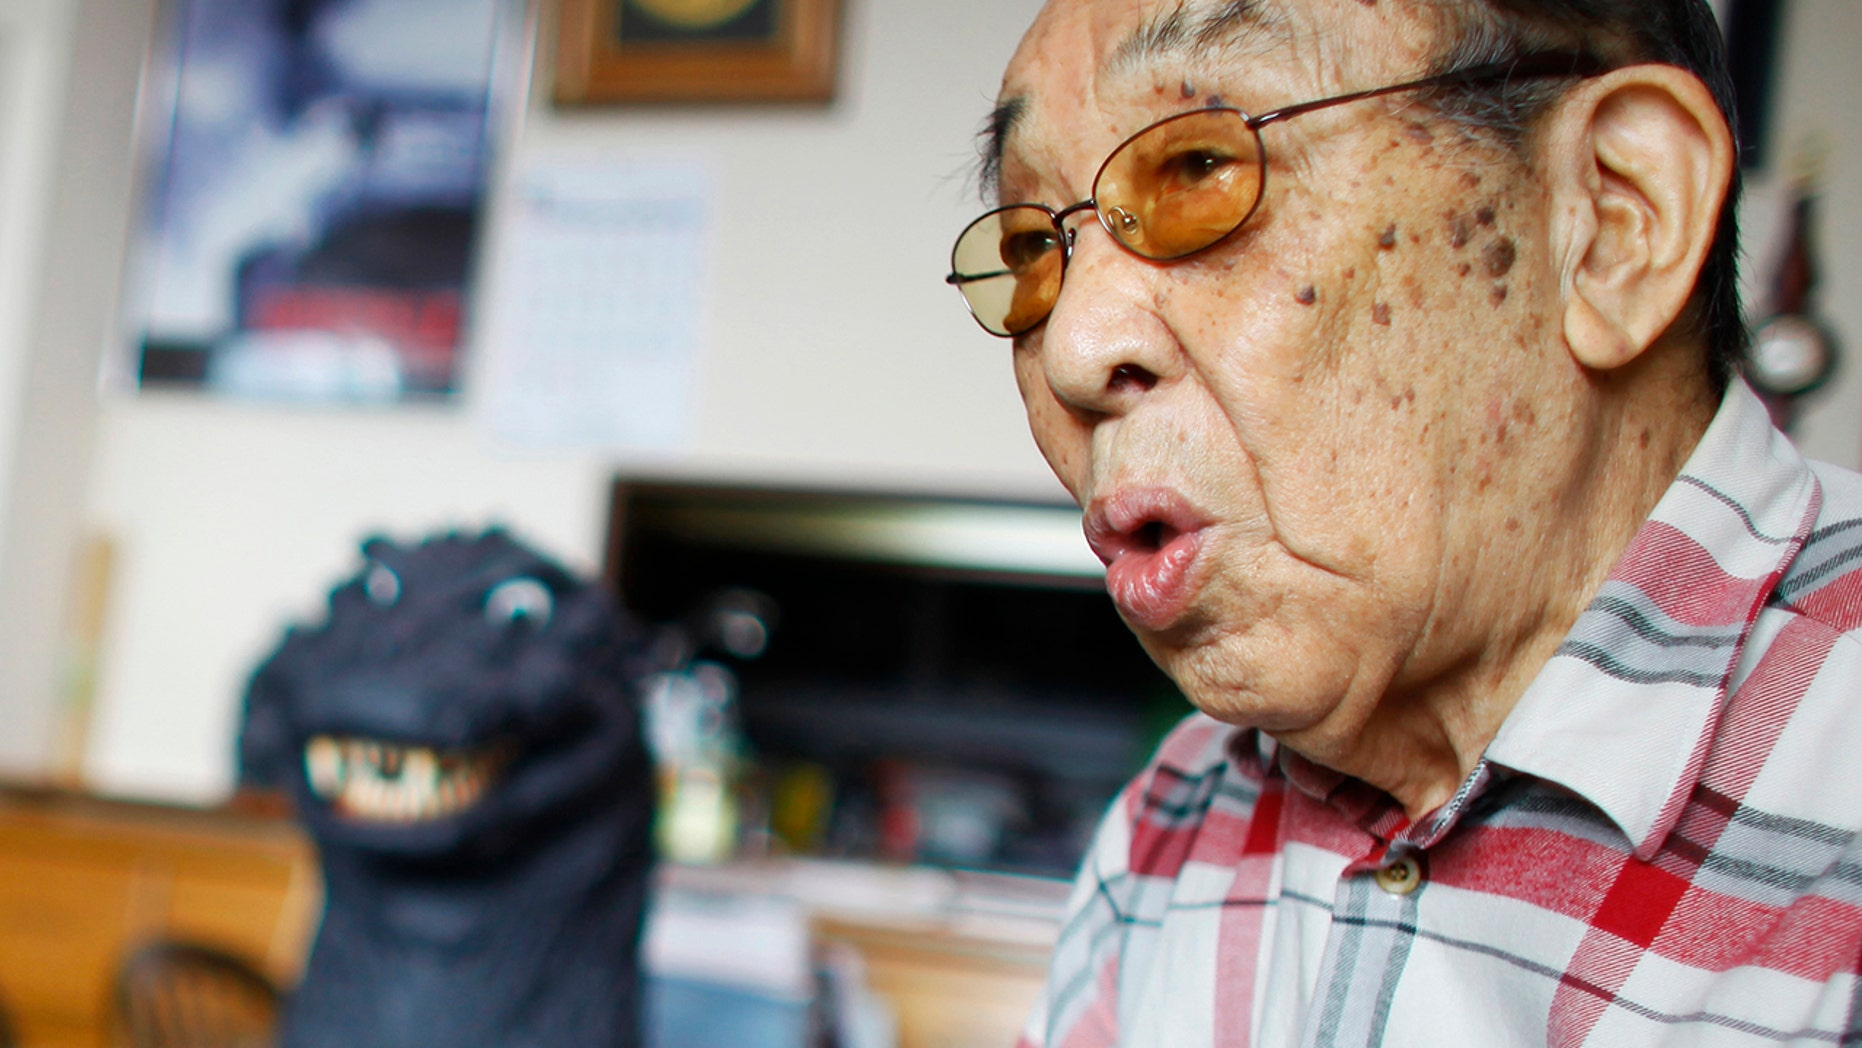 In this April 28, 2014 photo, original Godzilla suit actor Haruo Nakajima, who has played his role as the monster, speaks during an interview at his home in Sagamihara, near Tokyo. Nakajima, the actor who stomped in a rubber suit to portray the original 1954 Godzilla, has died on Monday, Aug. 7, 2017.